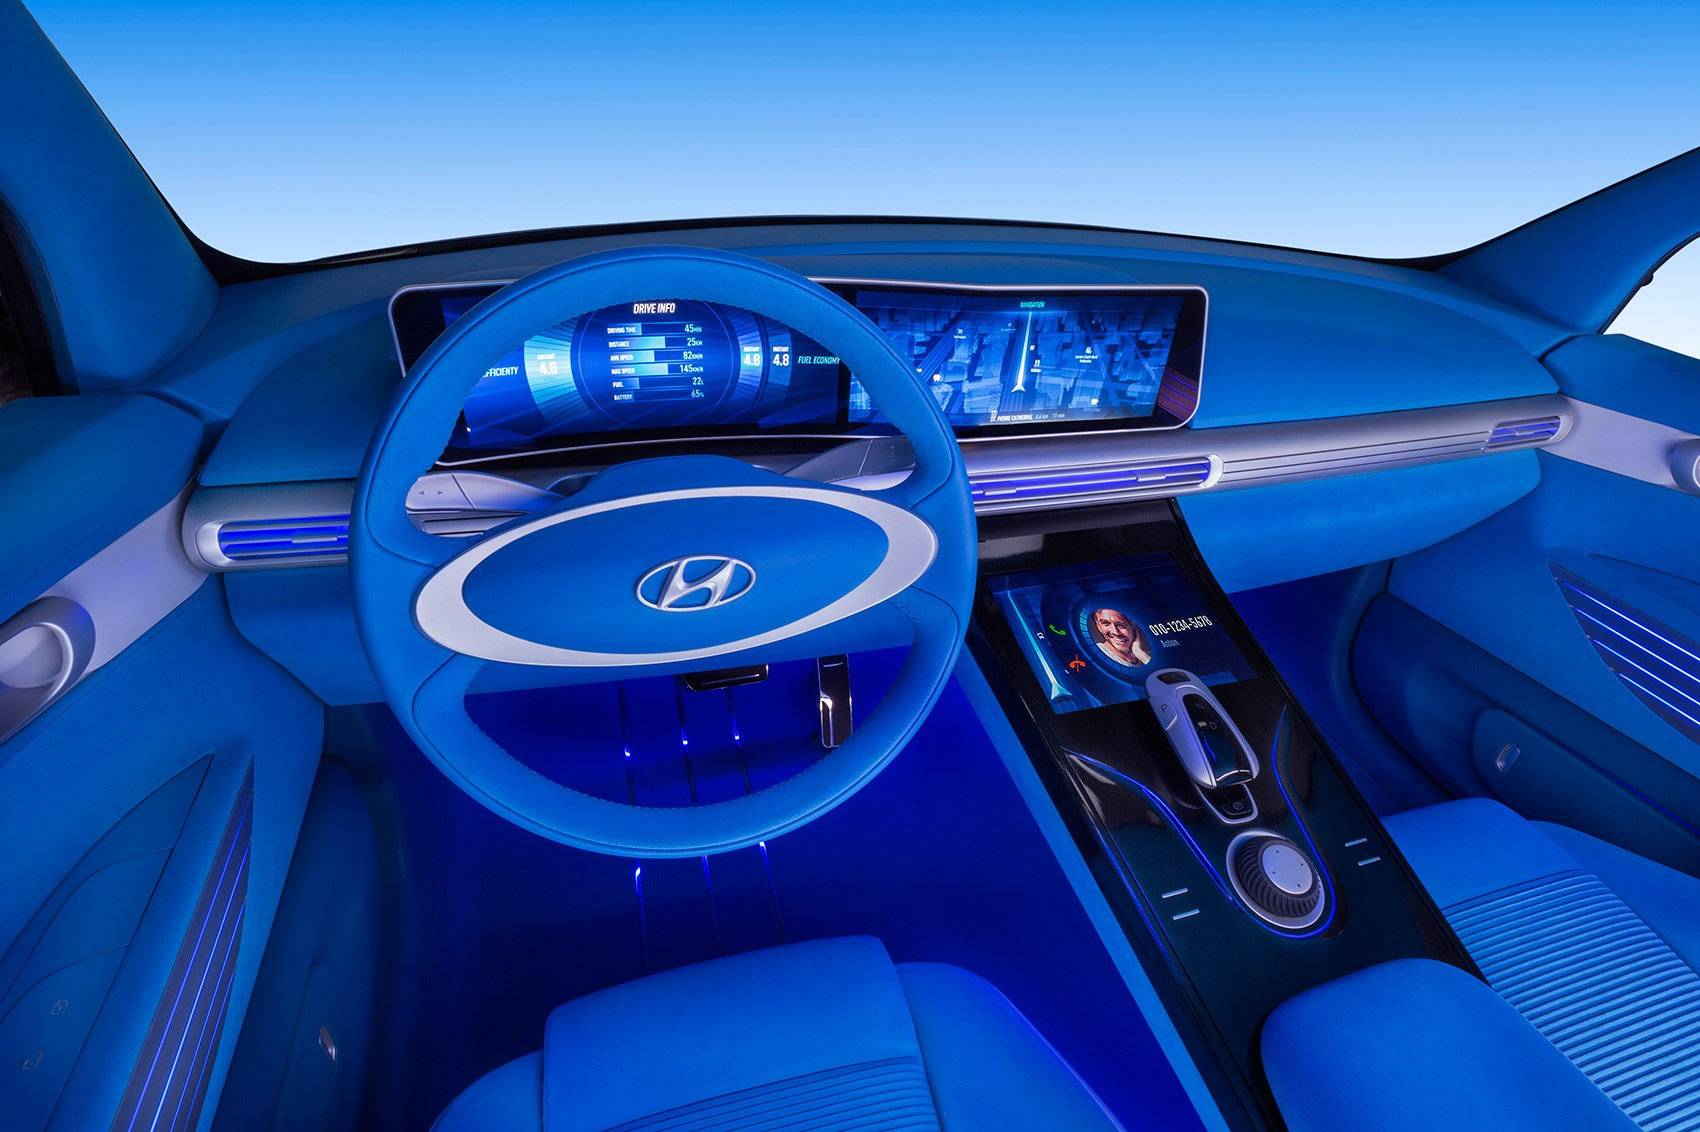 Hyundai unveils new fuel cell concept vehicle  at Geneva Motor Show